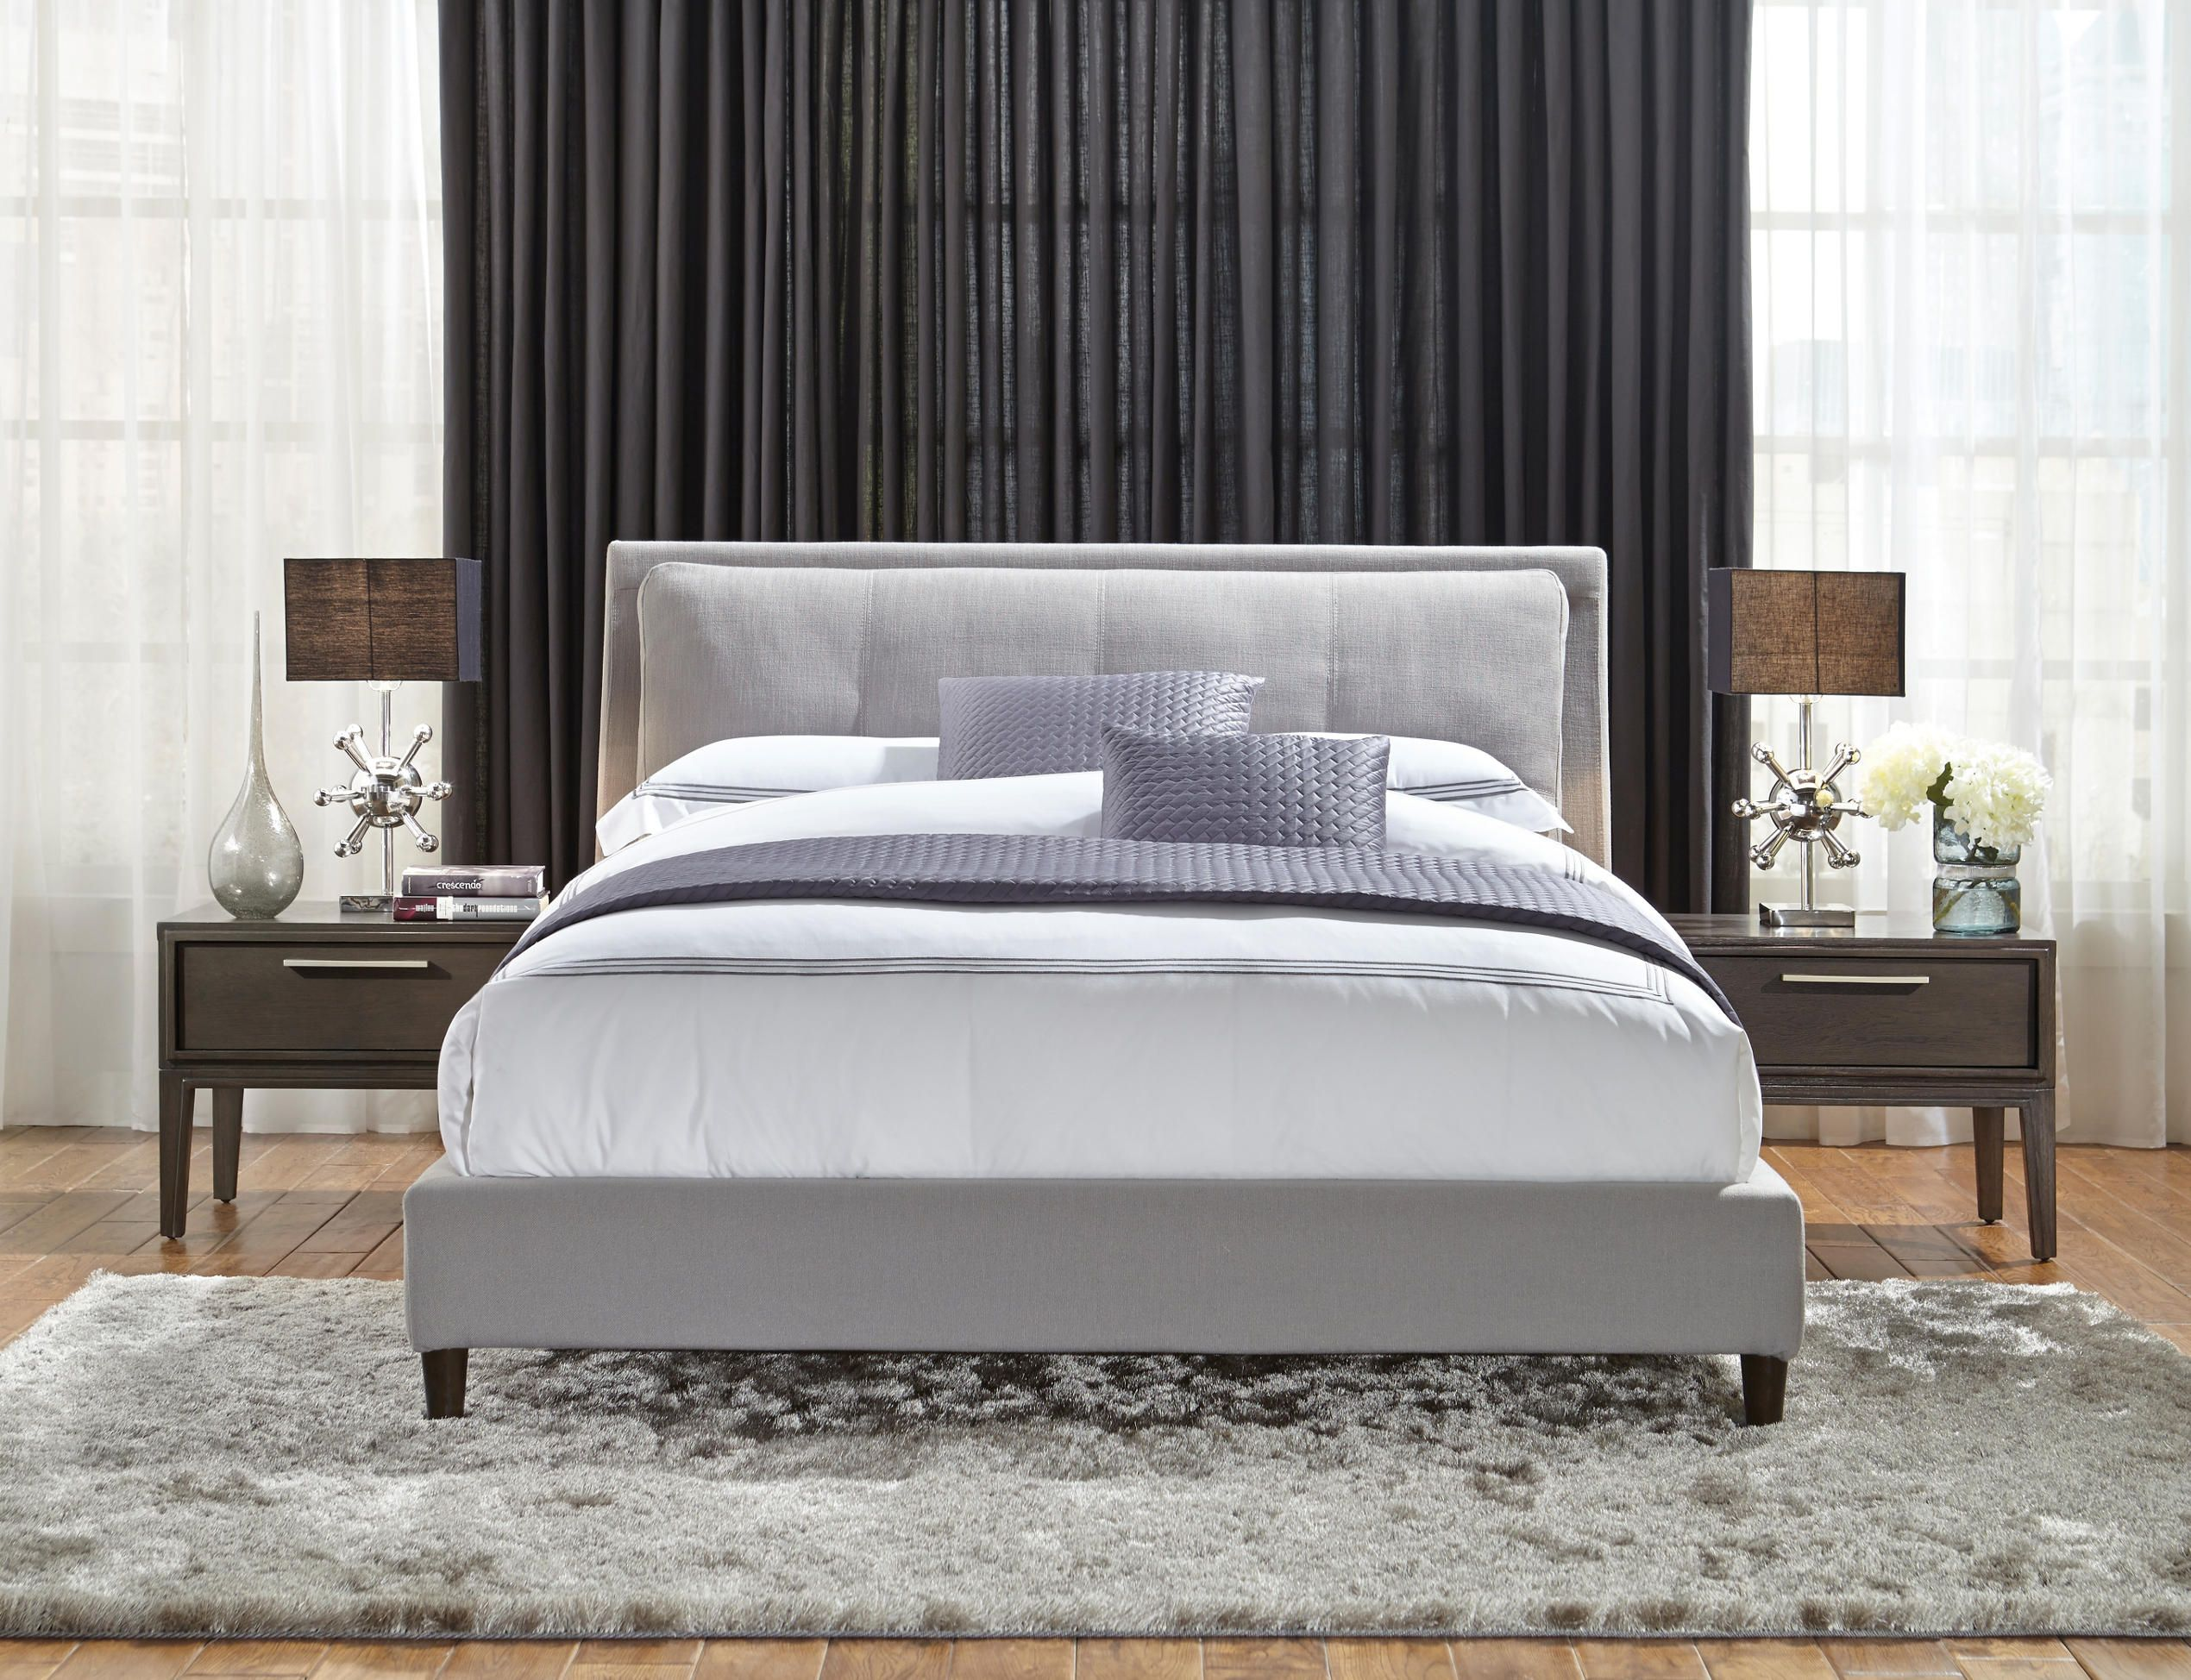 from the skyler collection. upholstered bed with pillow soft